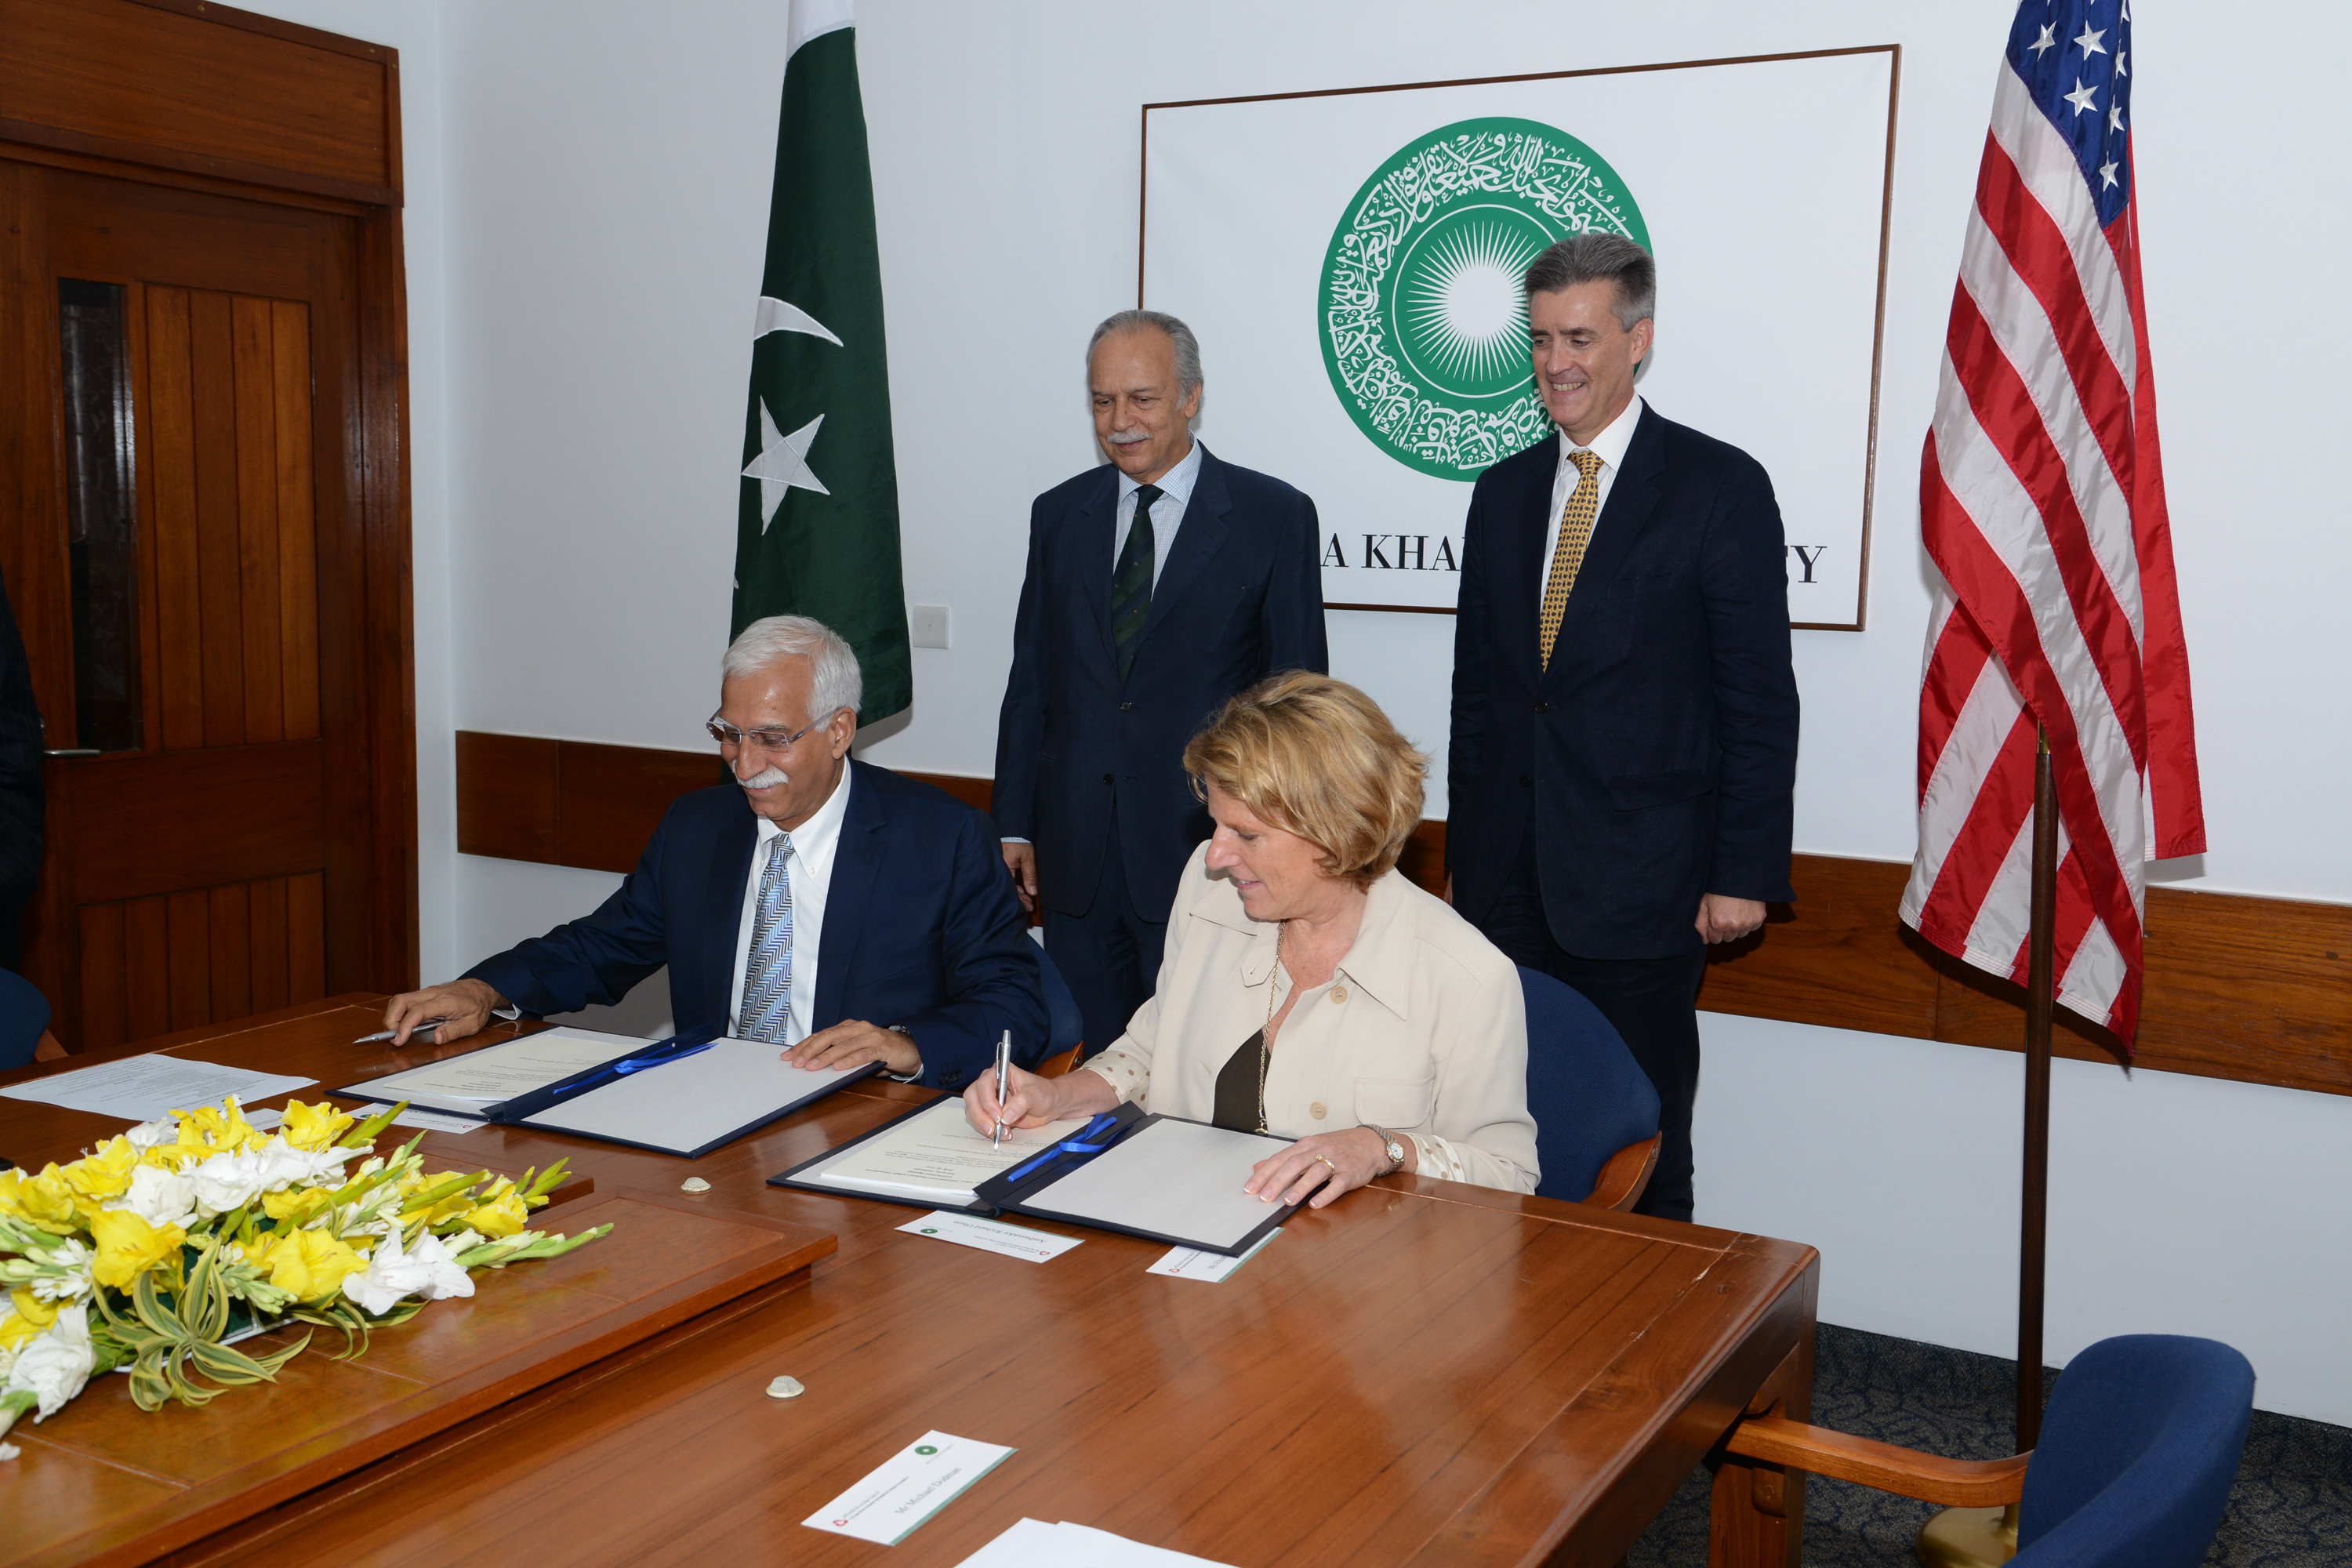 OPIC Provides Financing for Expansion of Aga Khan University